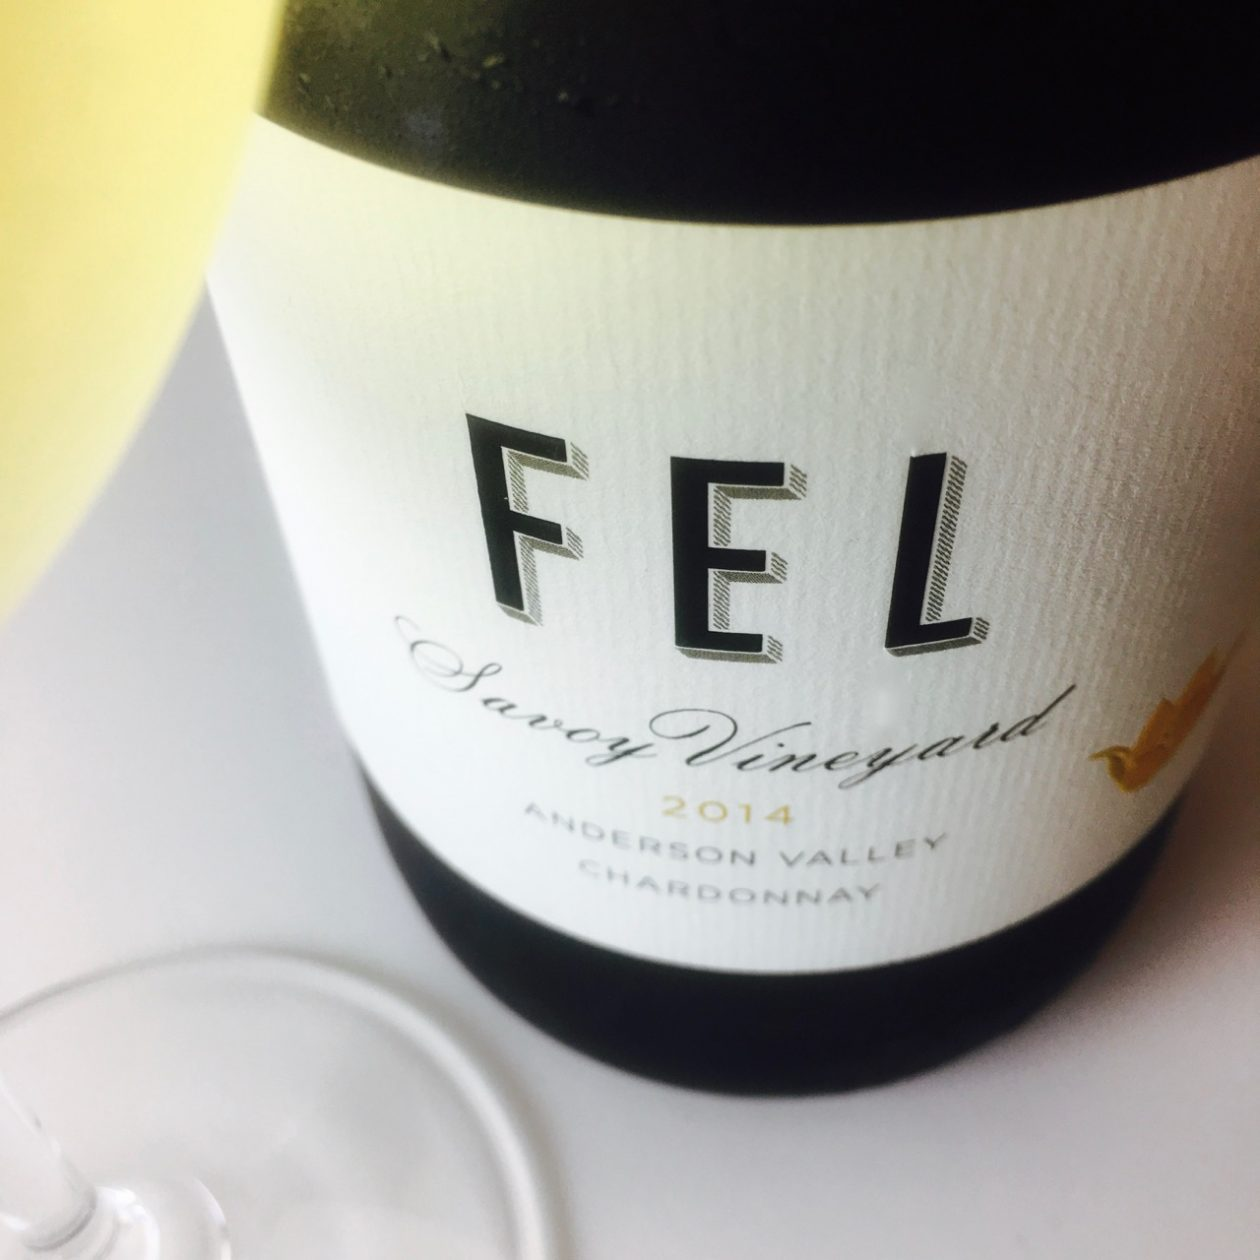 2014 FEL Chardonnay Savoy Vineyard Anderson Valley